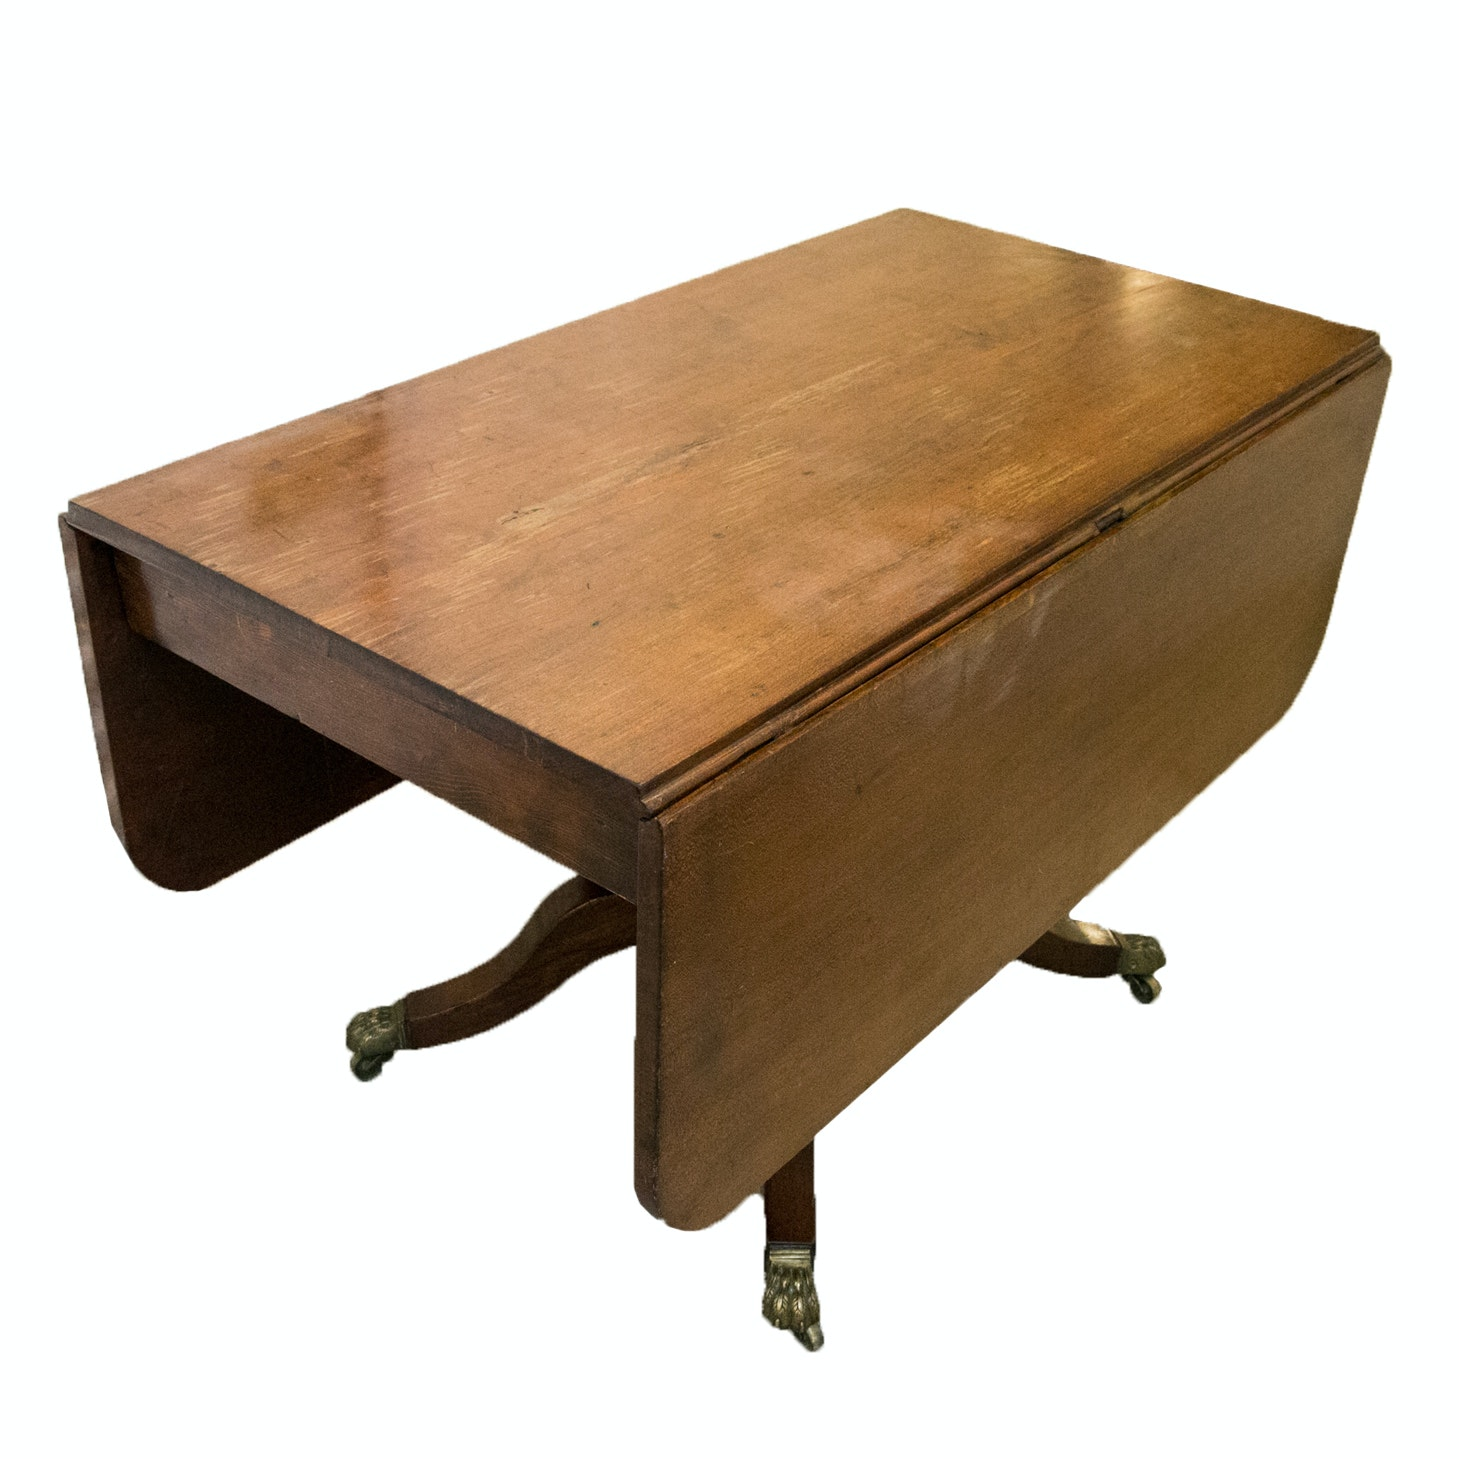 19th Century Federal Style Drop Leaf Table